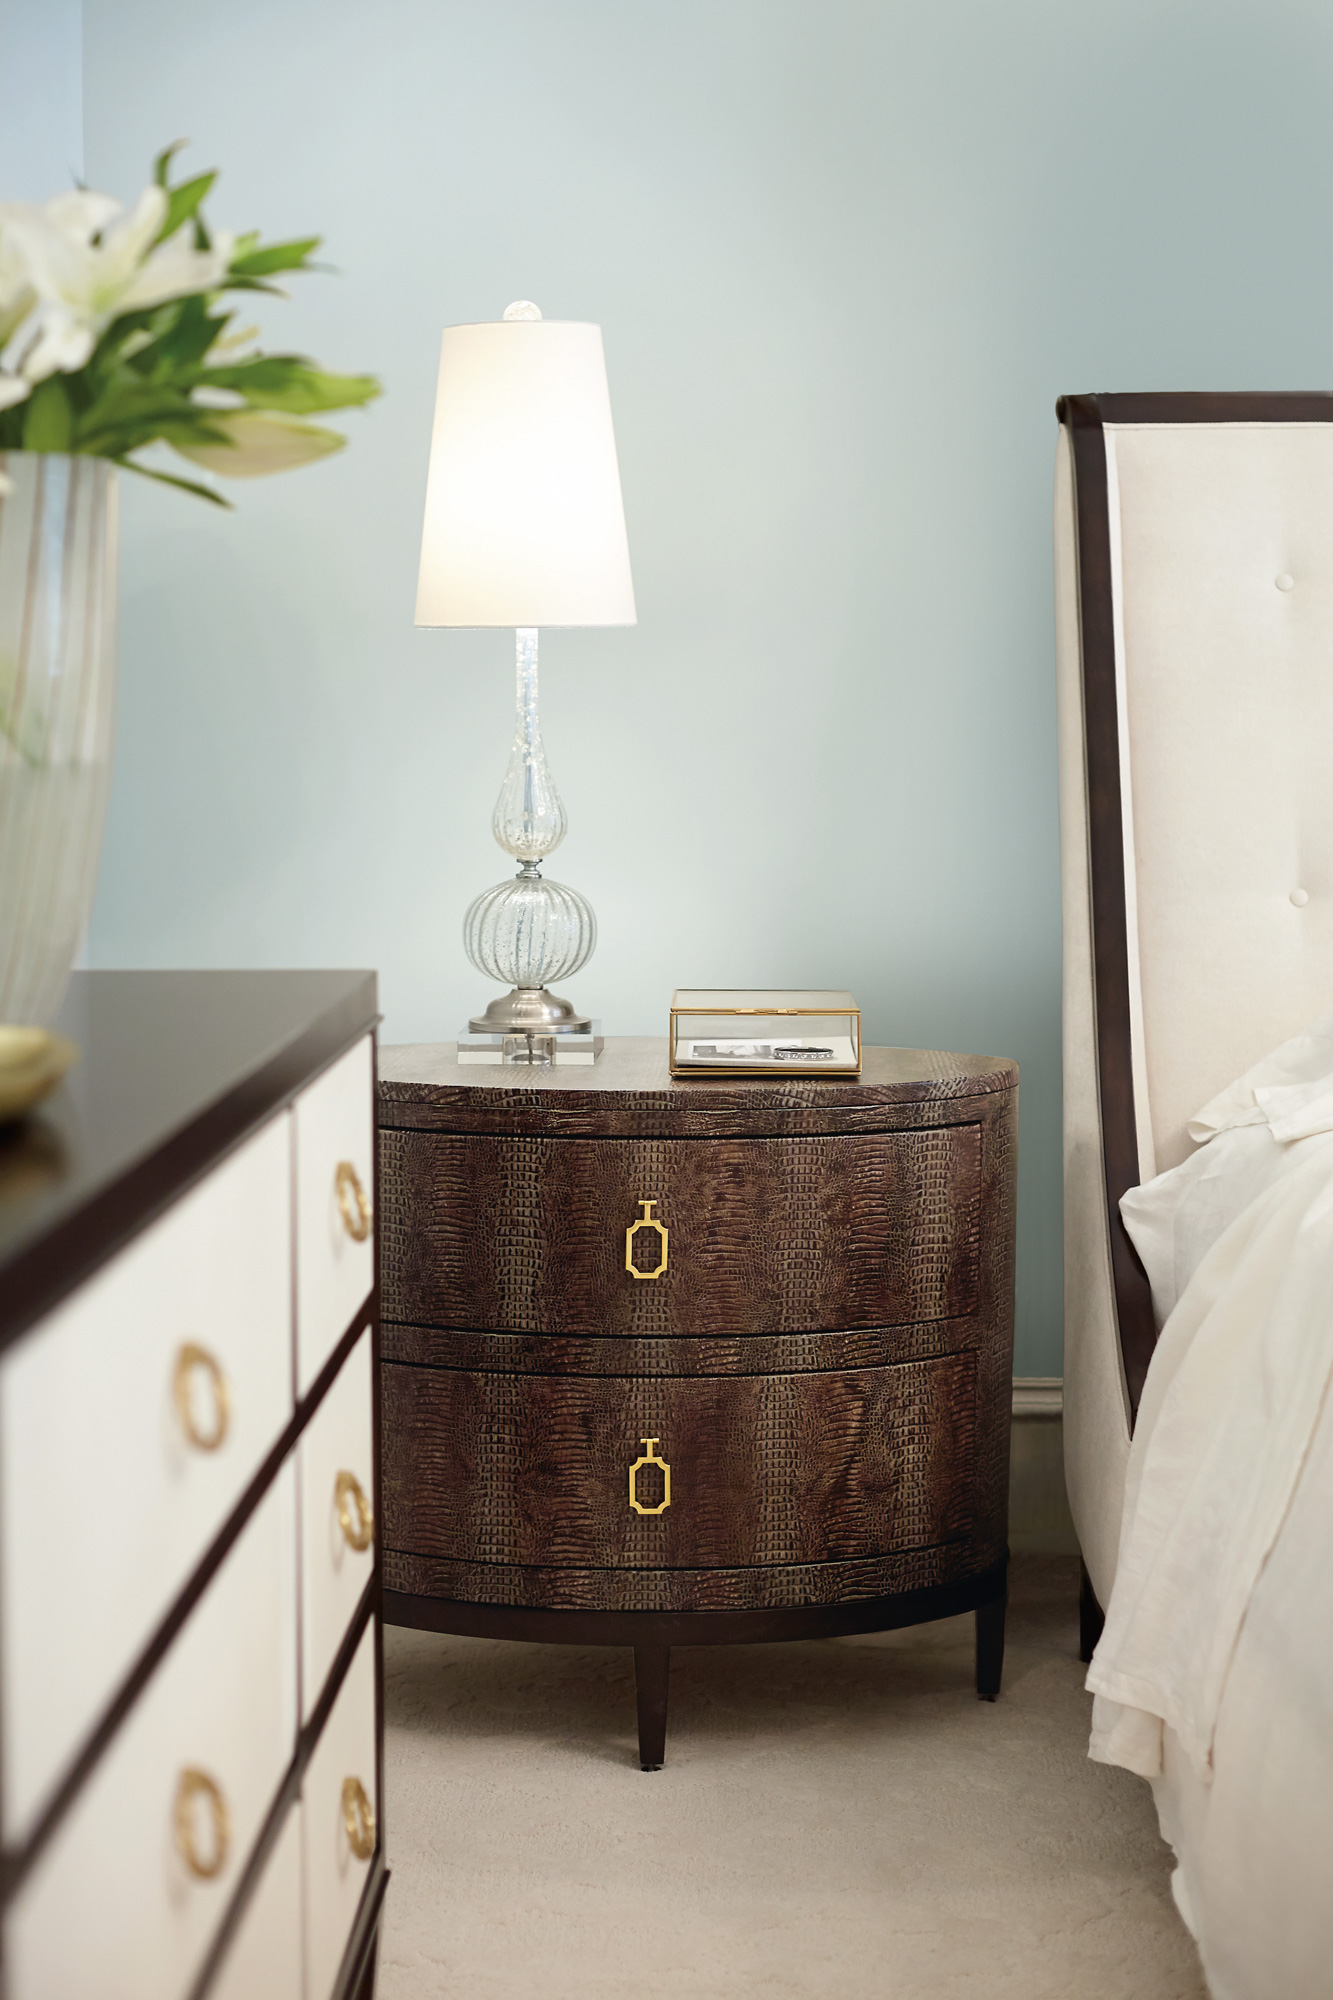 Jet Set Upholstered Bed And Oval Nightstand And Dresser